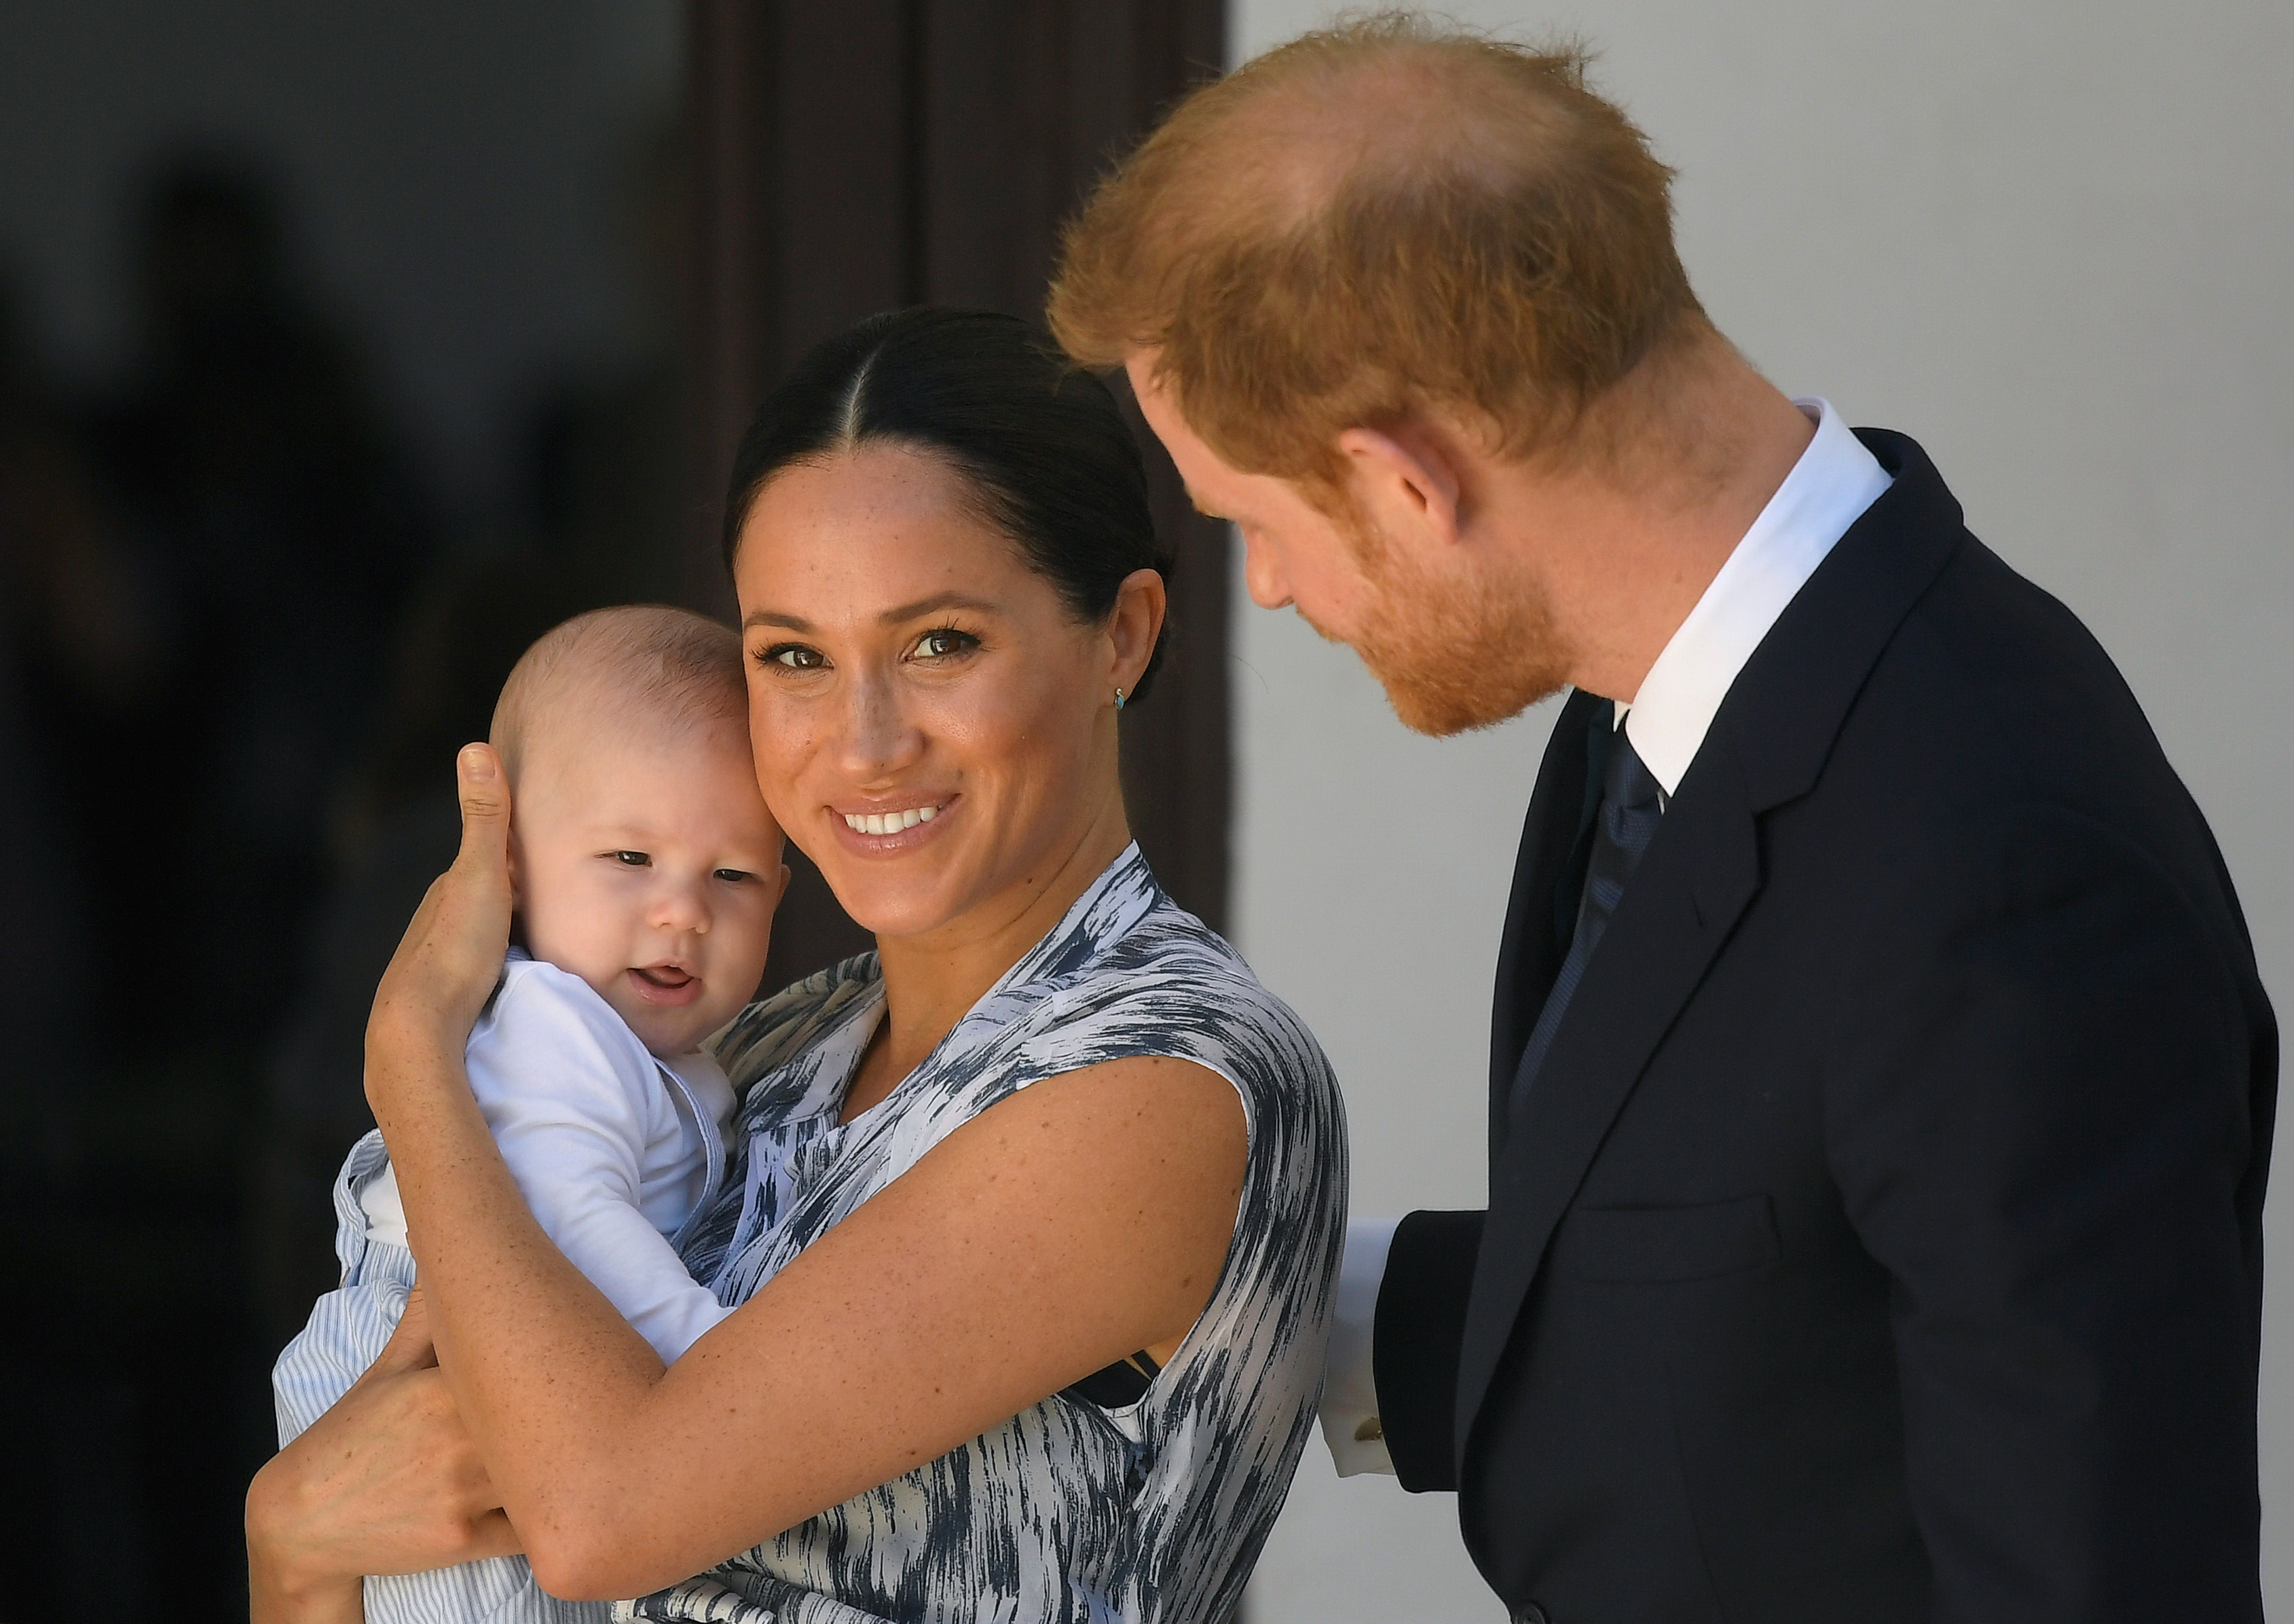 'My heart is melting' Viewers distracted by hidden adorable moment between Prince Harry and baby Archie during documentary